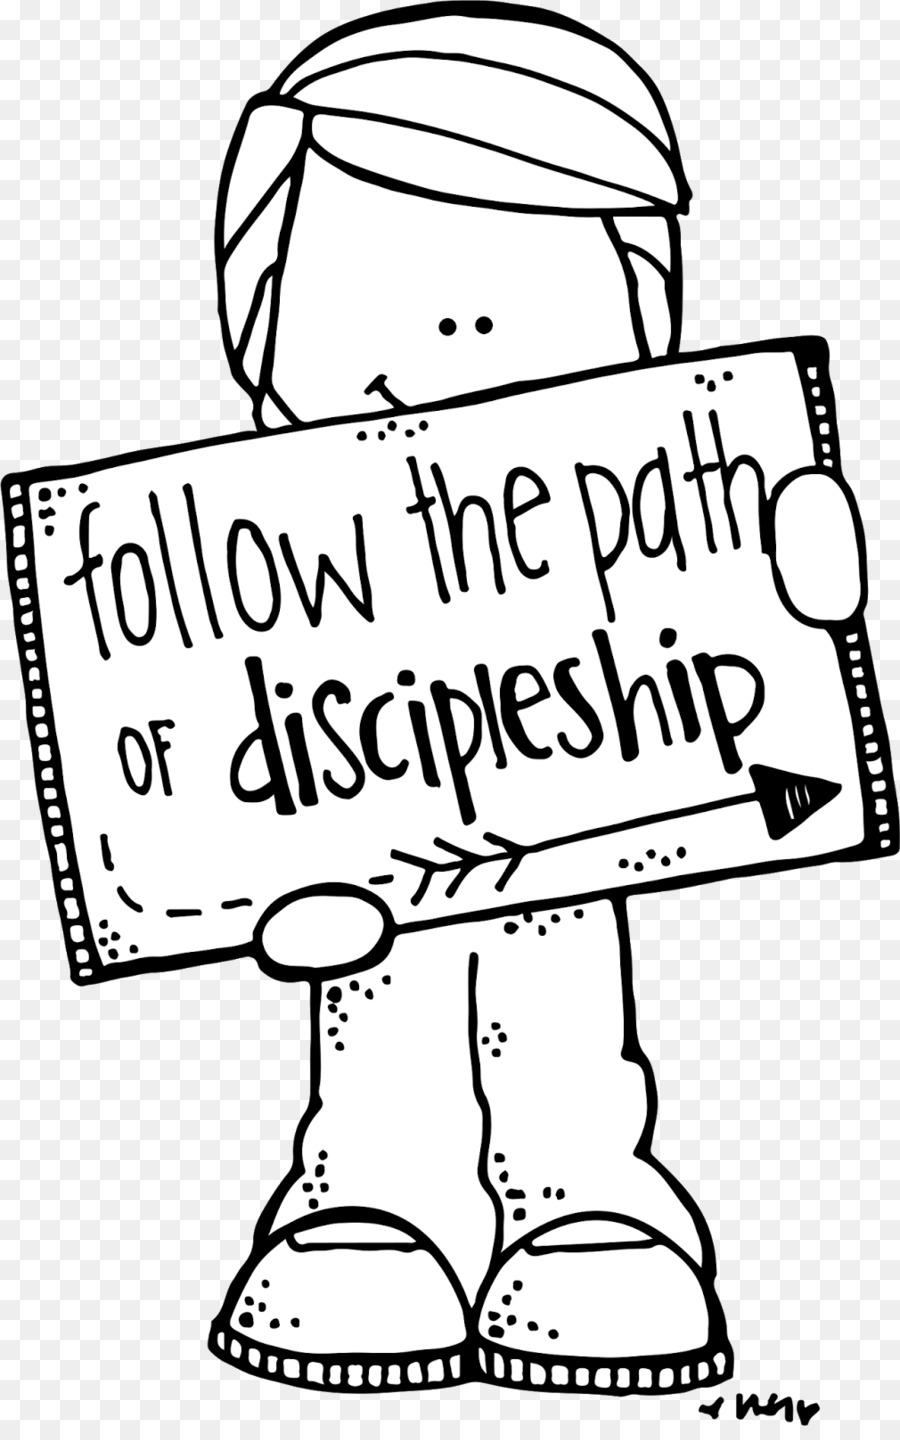 DiscipleshipClasses_webheader - Word of God Ministries |Discipleship Clipart